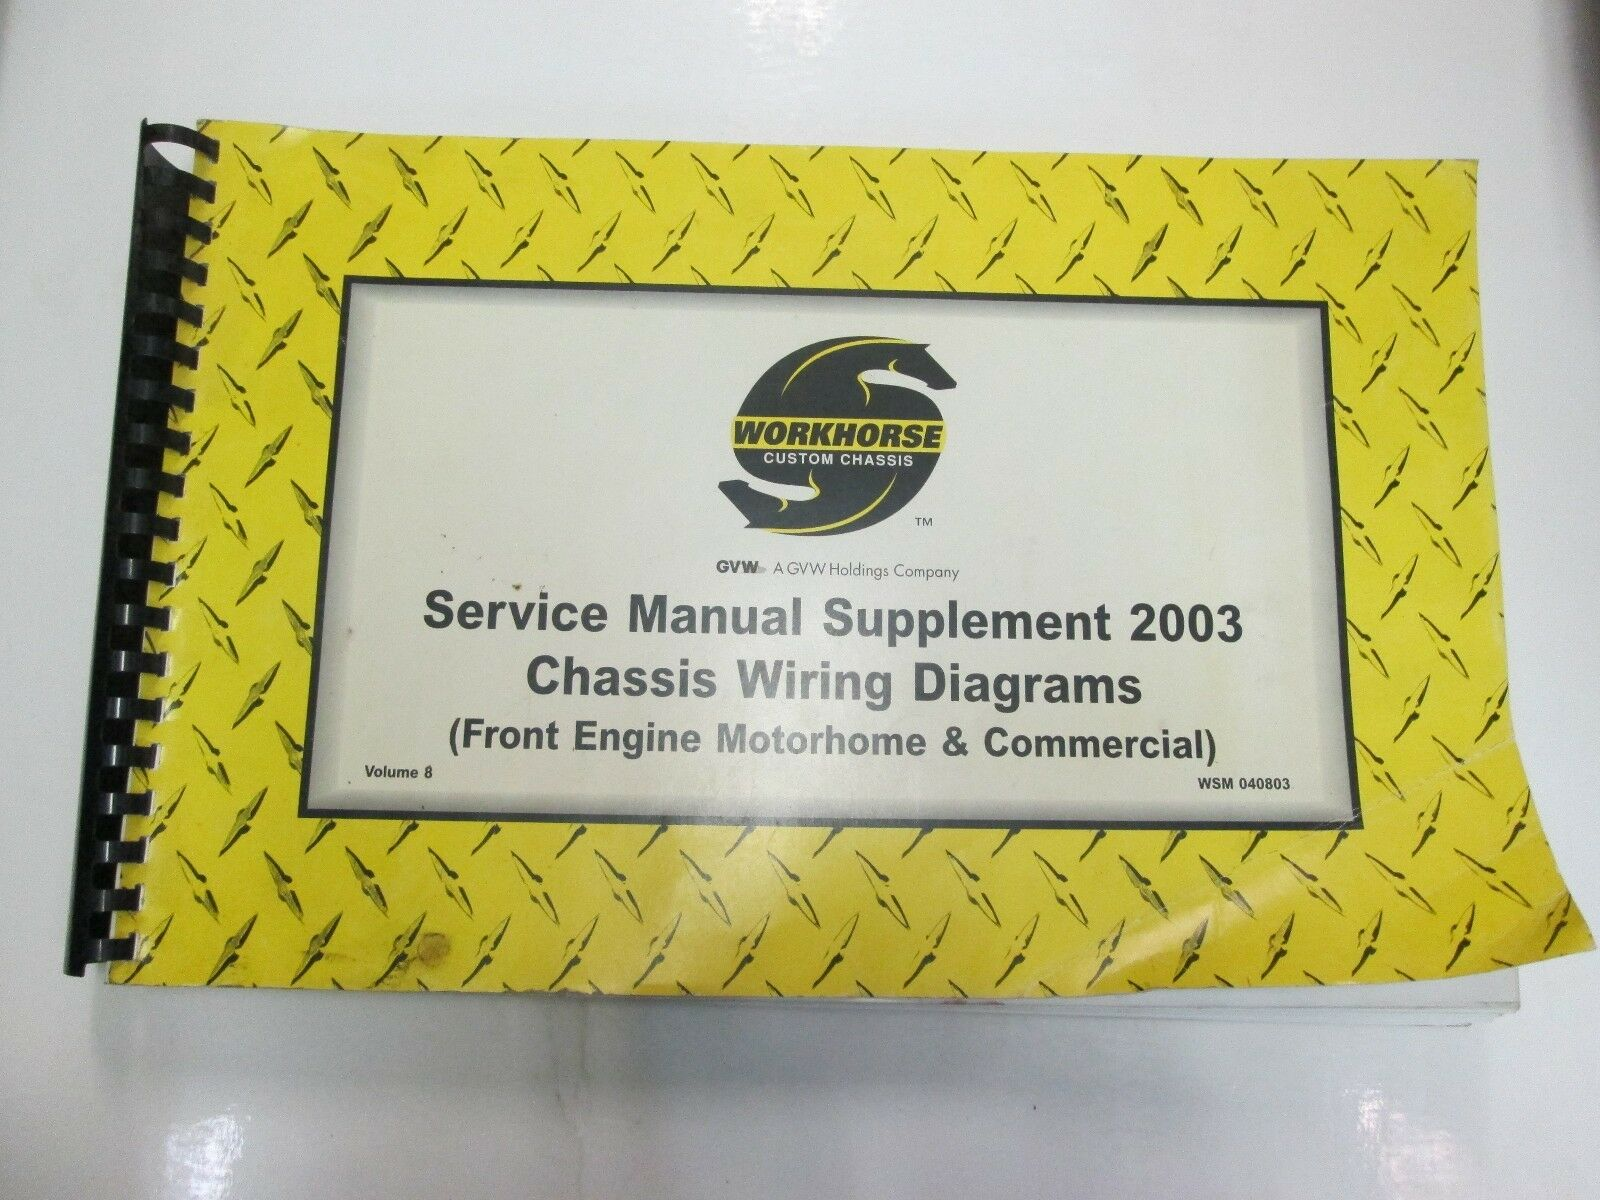 hight resolution of workhorse custom chassis service manual supplement chassis wiring diagrams vol 8